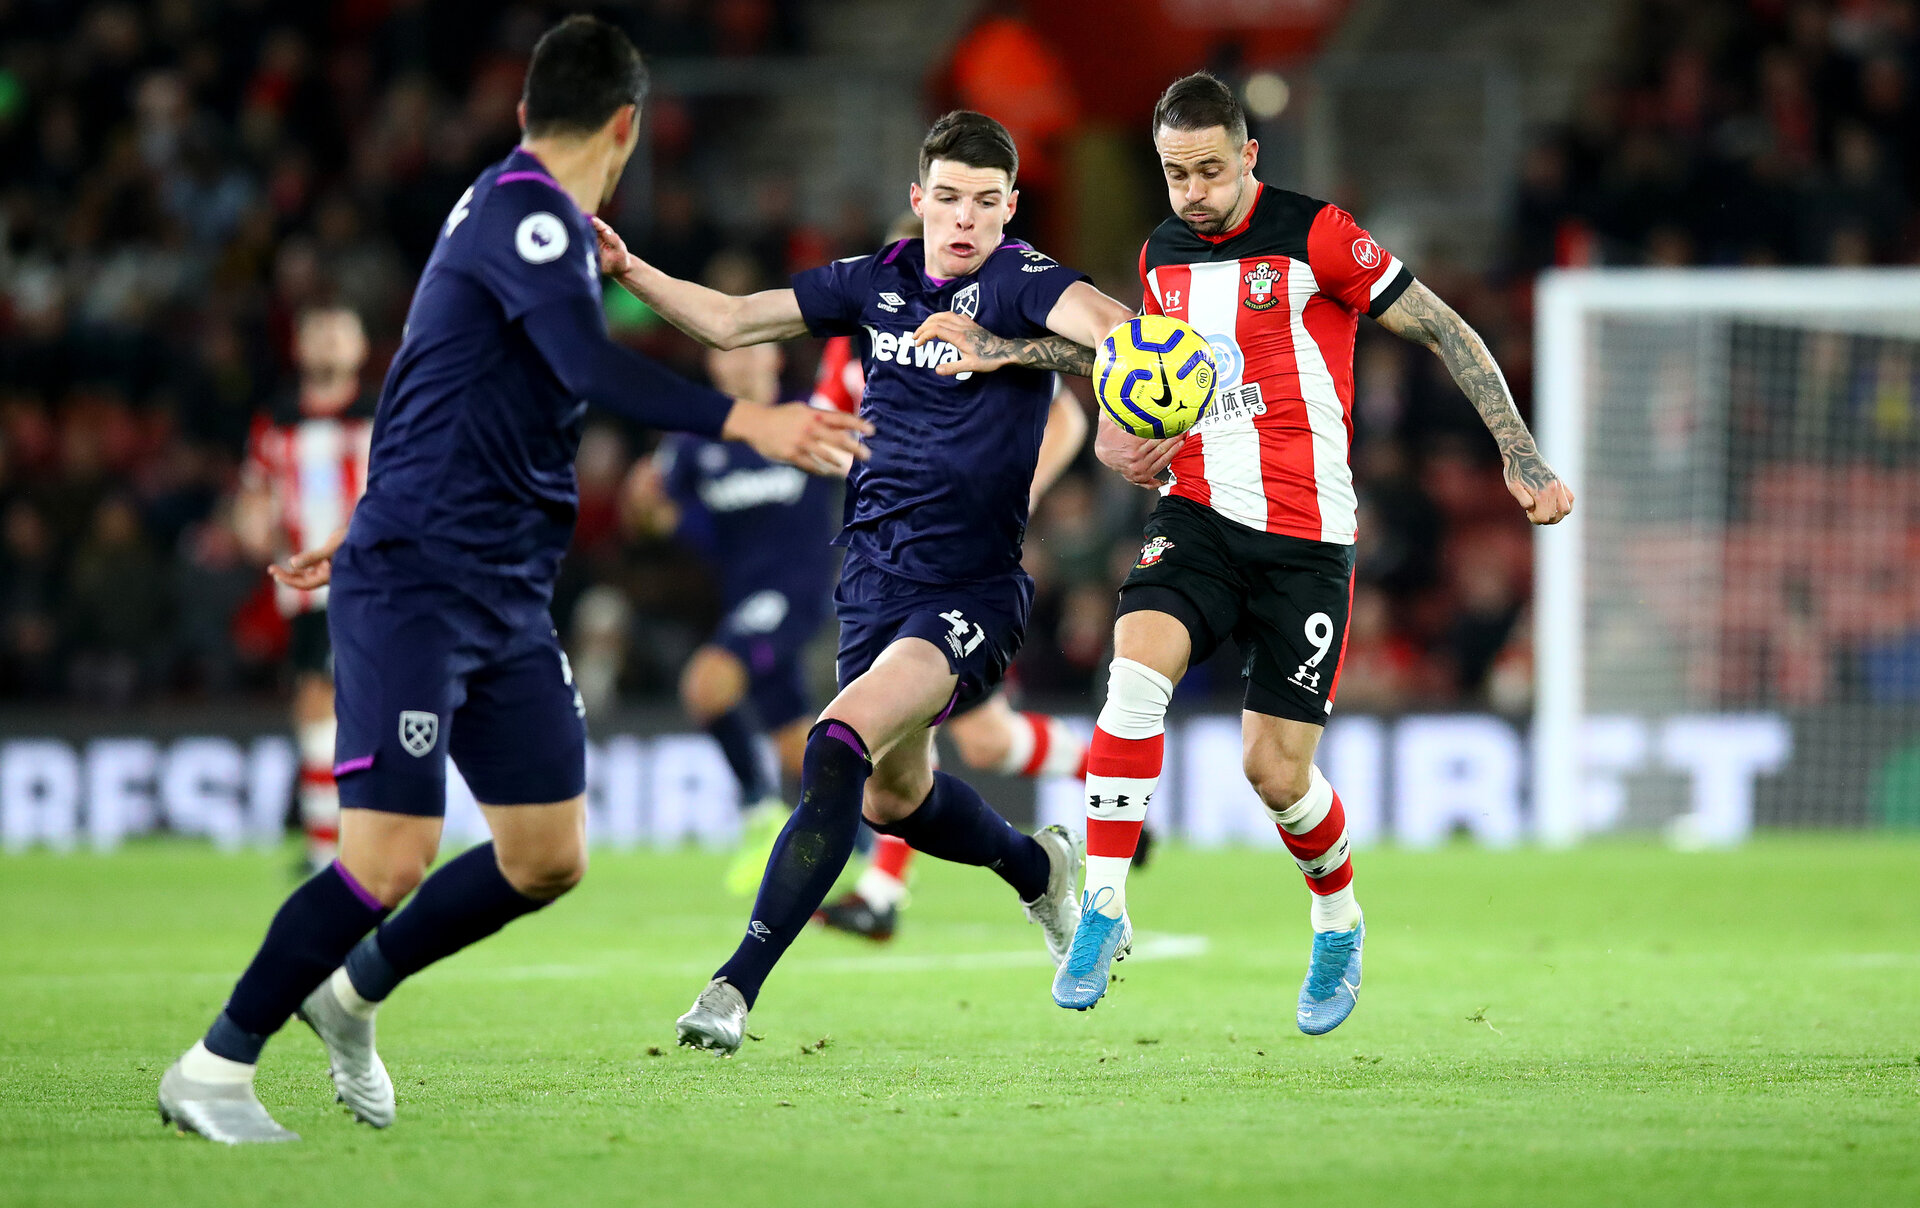 SOUTHAMPTON, ENGLAND - DECEMBER 14: Danny Ings(R) of Southampton under pressure from Declan Rice(L) of West Ham United during the Premier League match between Southampton FC and West Ham United at St Mary's Stadium on December 14, 2019 in Southampton, United Kingdom. (Photo by Matt Watson/Southampton FC via Getty Images)